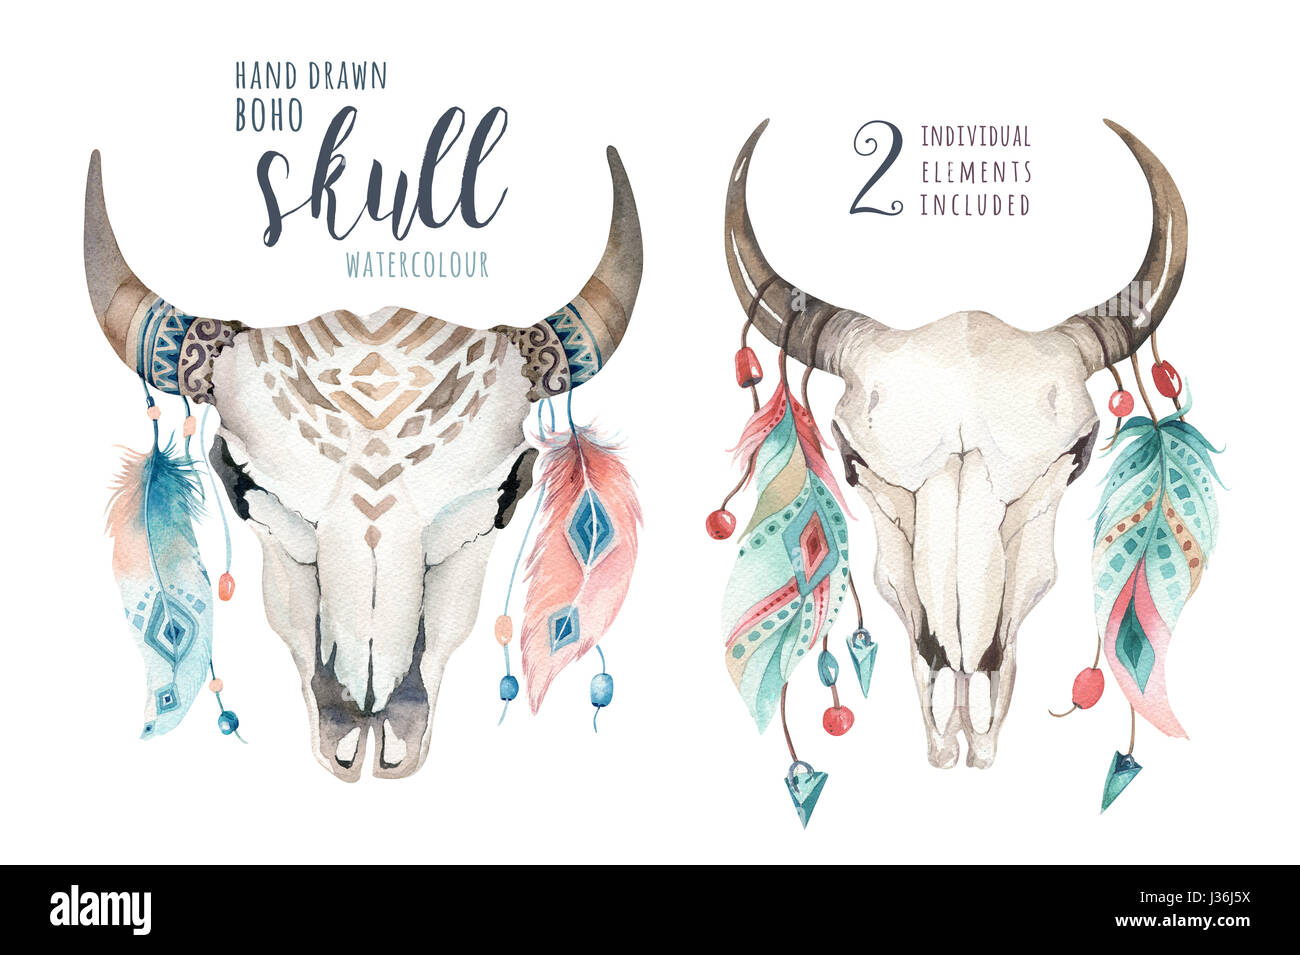 Cow Skull Cut Out Stock Images & Pictures - Alamy